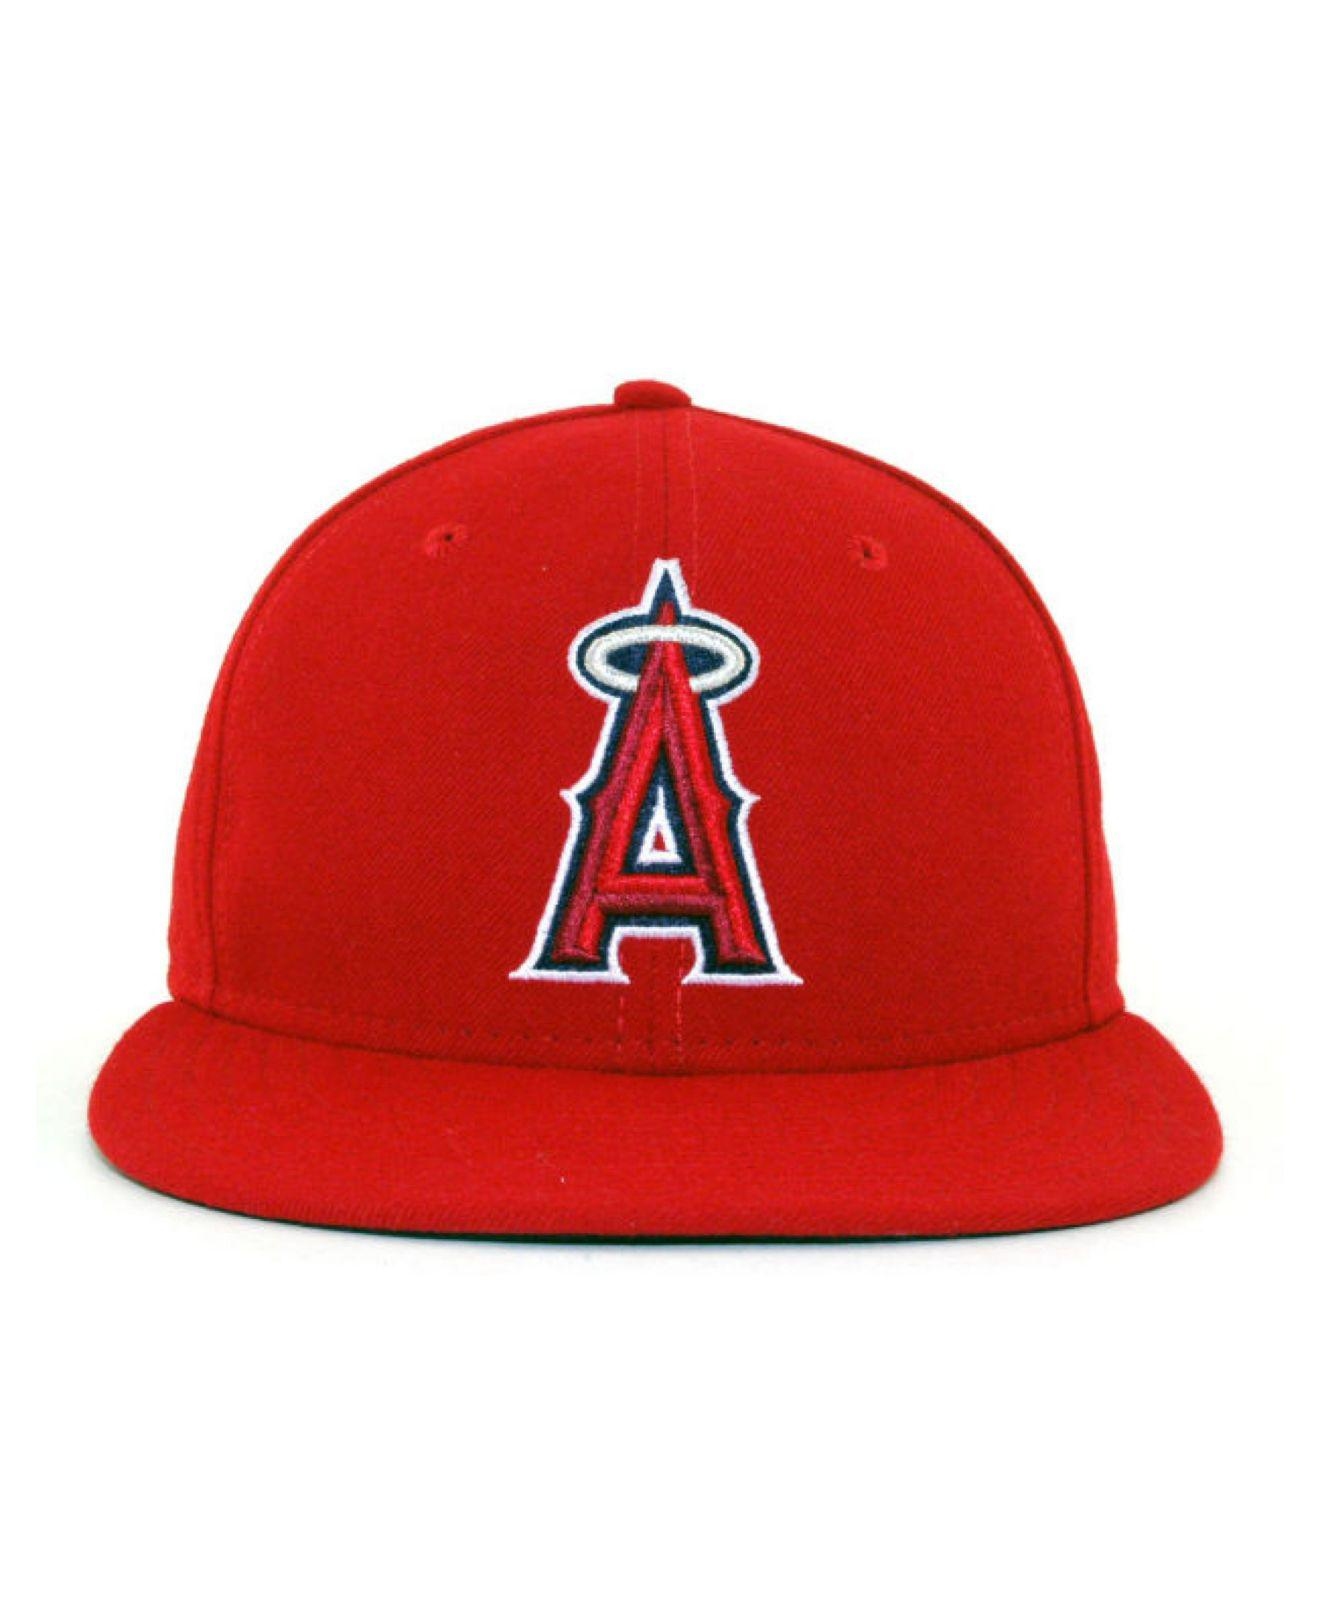 online store 30aee 90c5c Lyst - Ktz Los Angeles Angels Of Anaheim Mlb Authentic Collection 59fifty  Cap in Red for Men